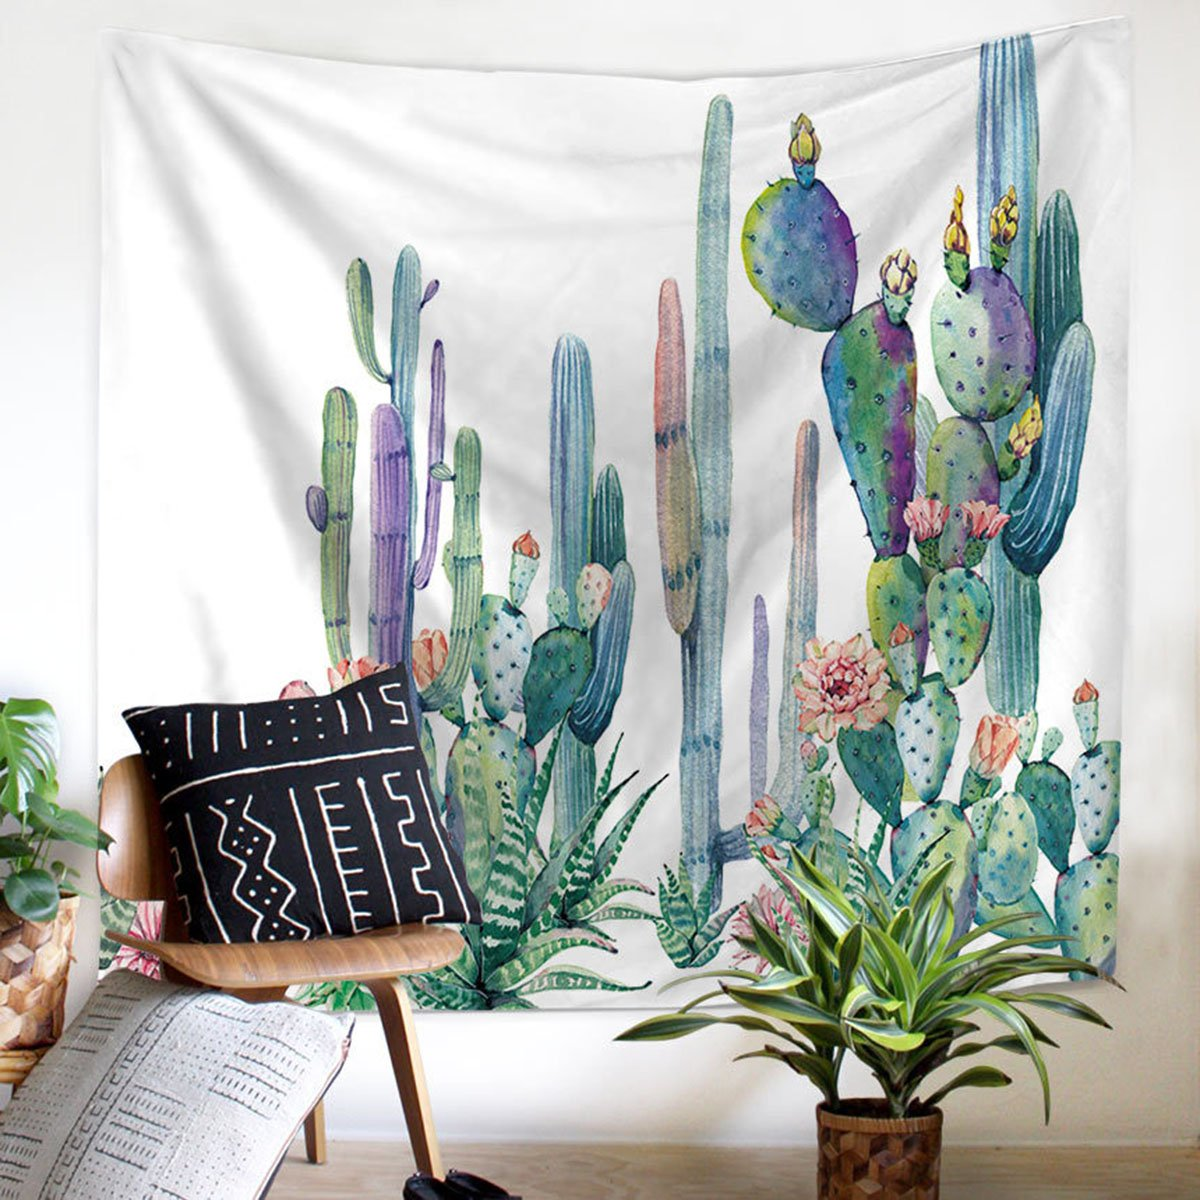 Shukqueen Tapestry, Cactus Decor Tapestry Wall Hanging Decor Art Home Decor, Green and Purple Watercolor Printed Bedroom Living Room Dorm Wall Hanging Tapestry Beach Throw 51H x 60W